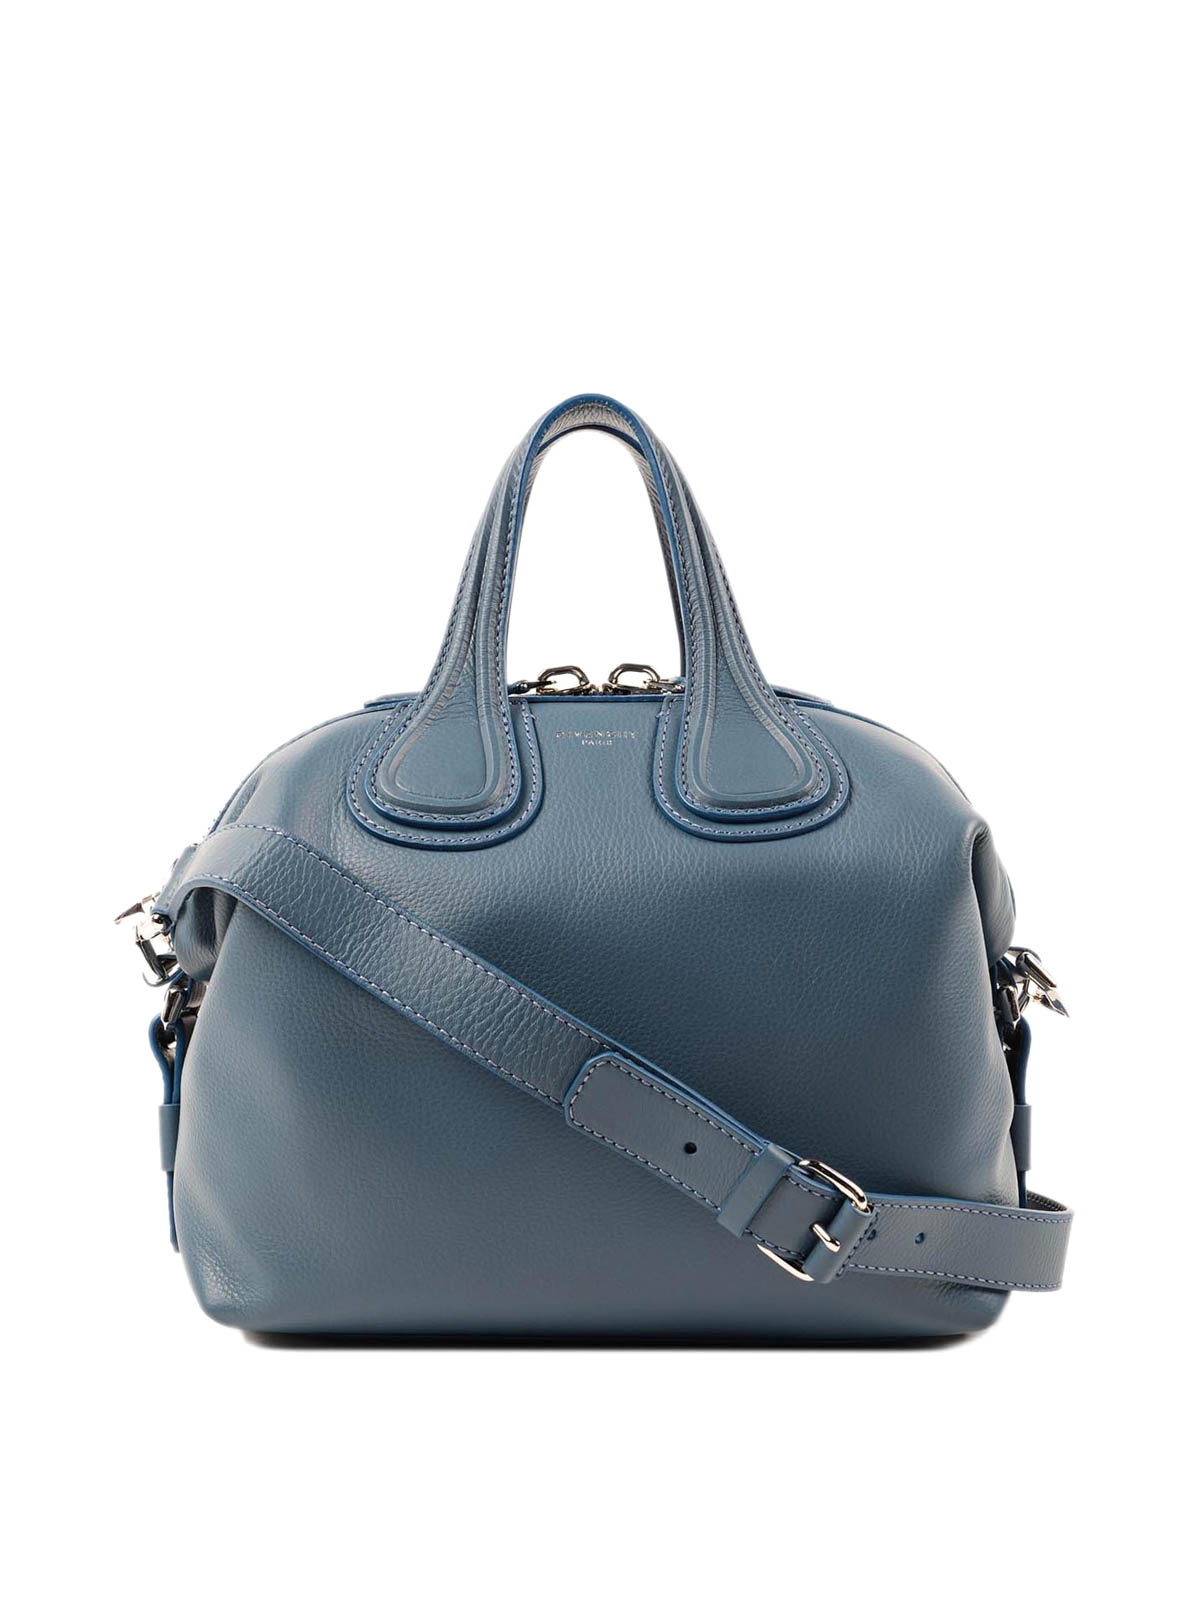 1a9fbc4a931 Givenchy - Small Nightingale bag - bowling bags - 5096025 456 ...